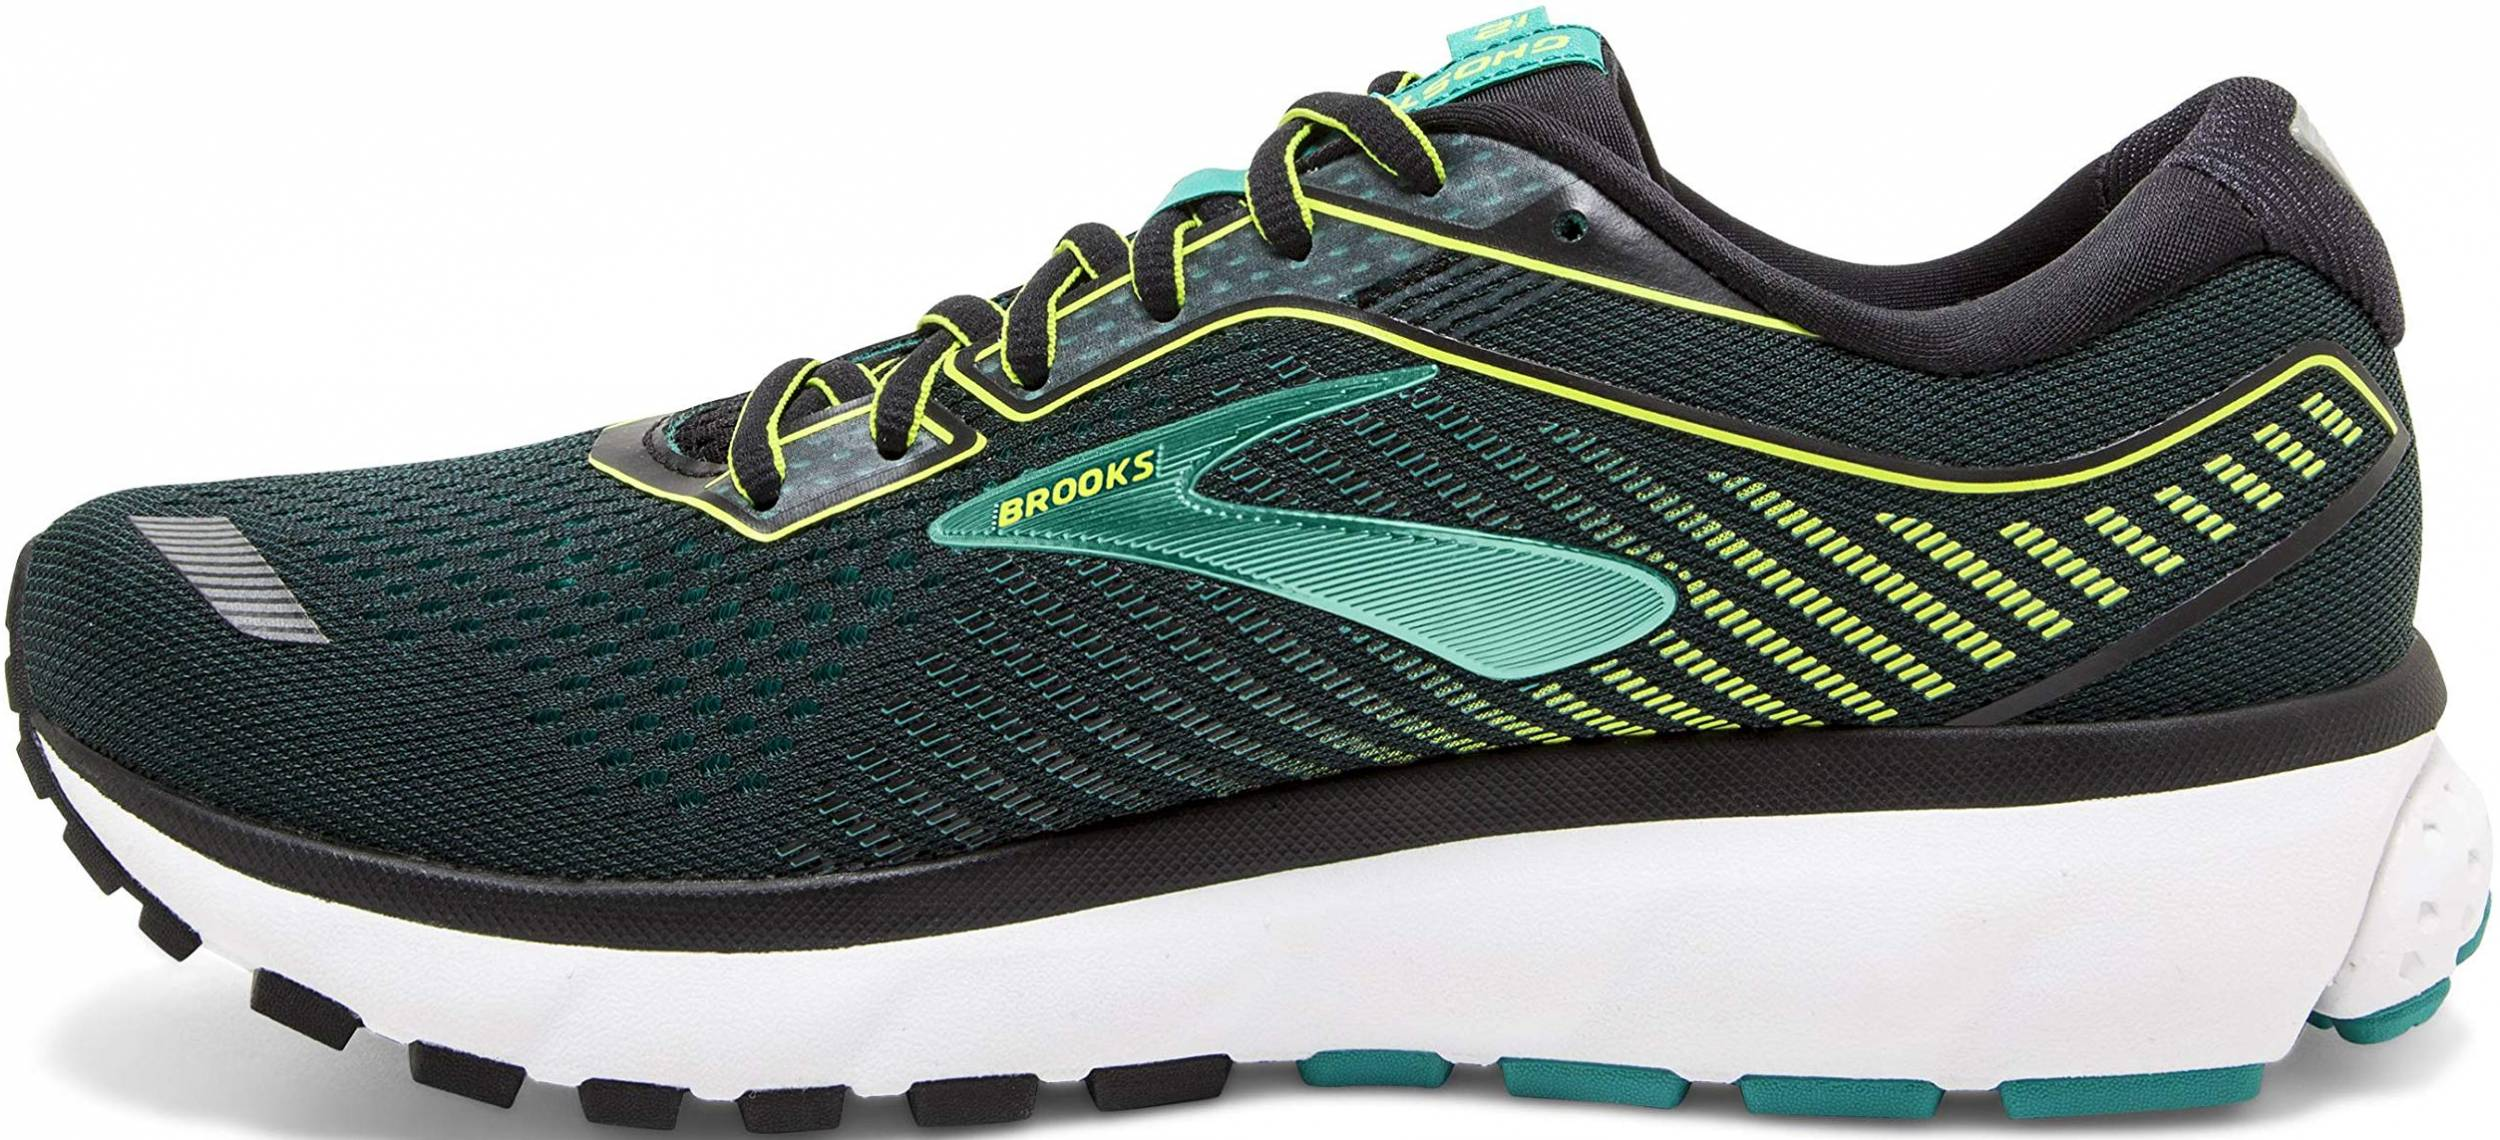 Save 18% on Narrow Brooks Running Shoes